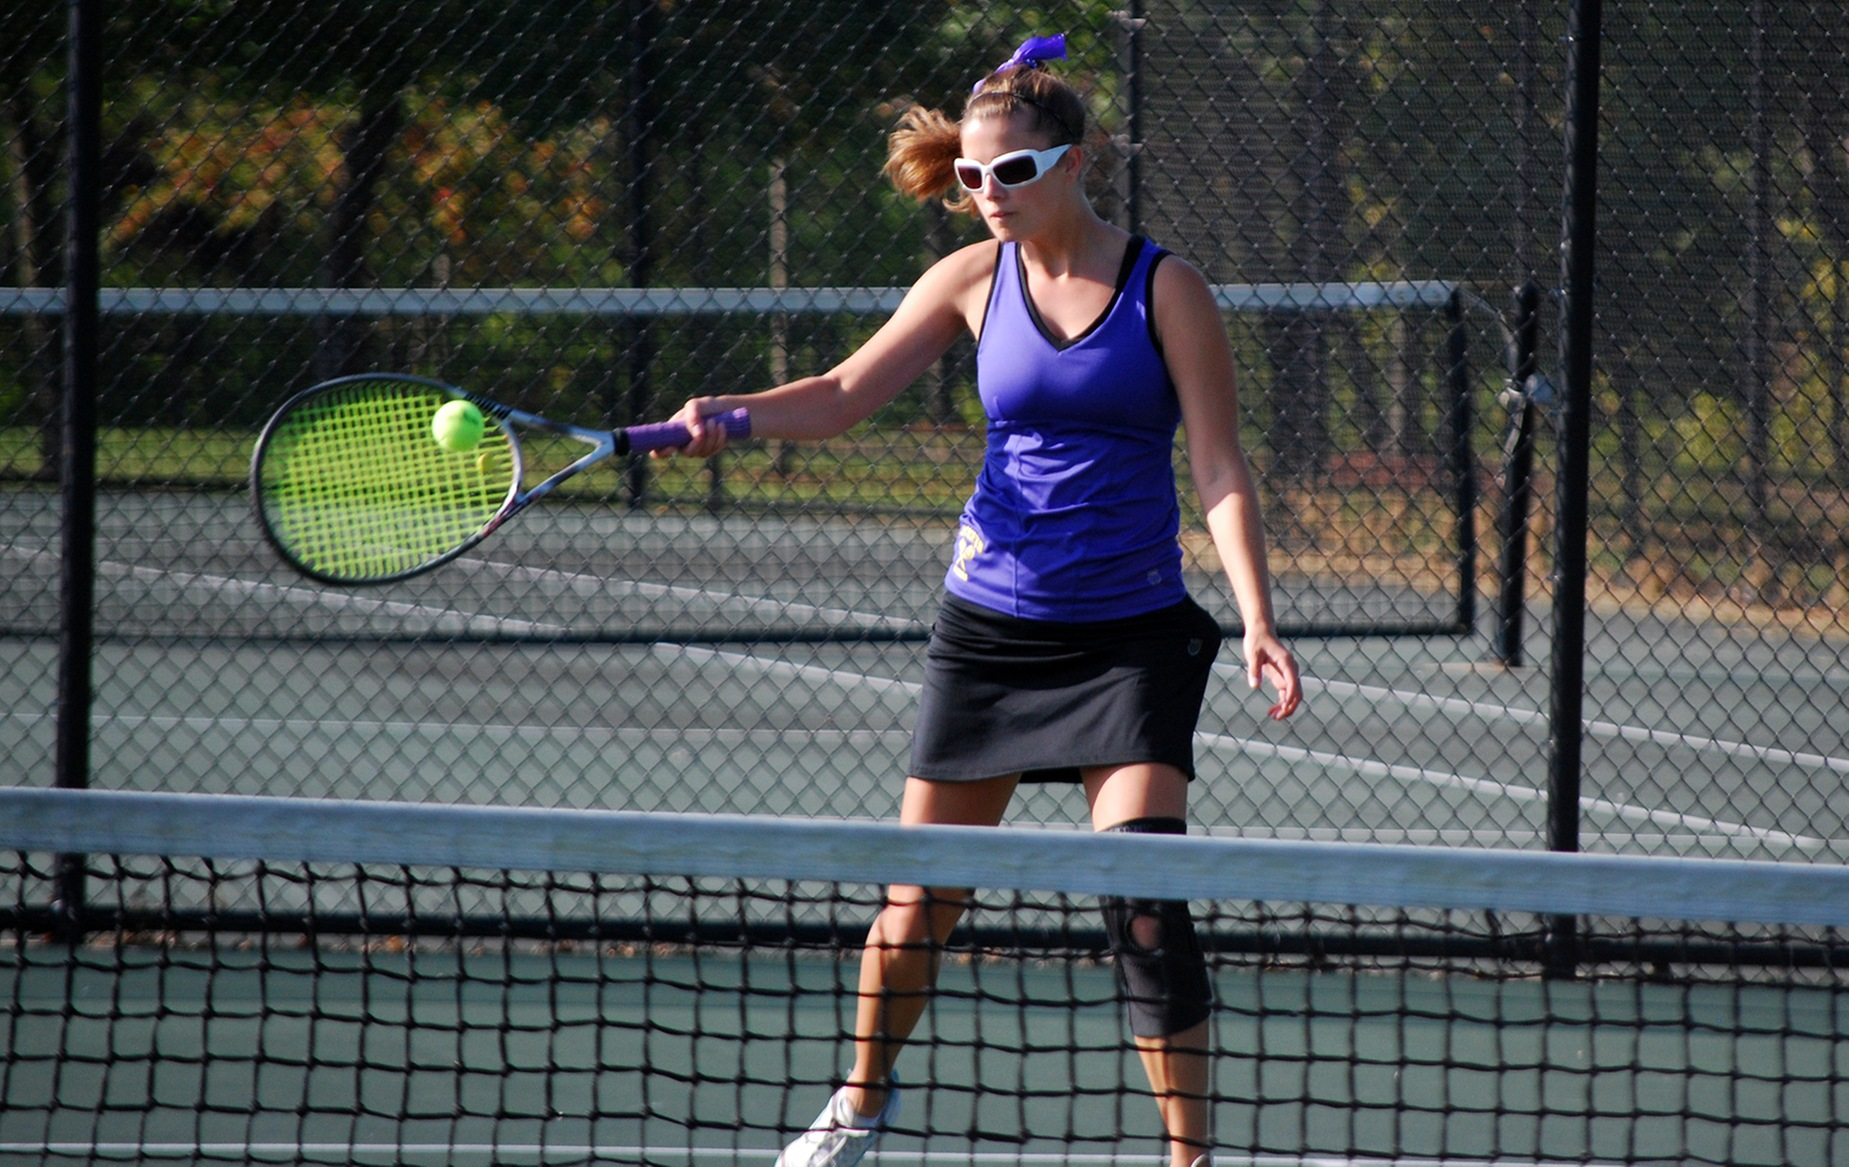 Carunchia and Sandercock Claim Singles Wins, DC Drops Match